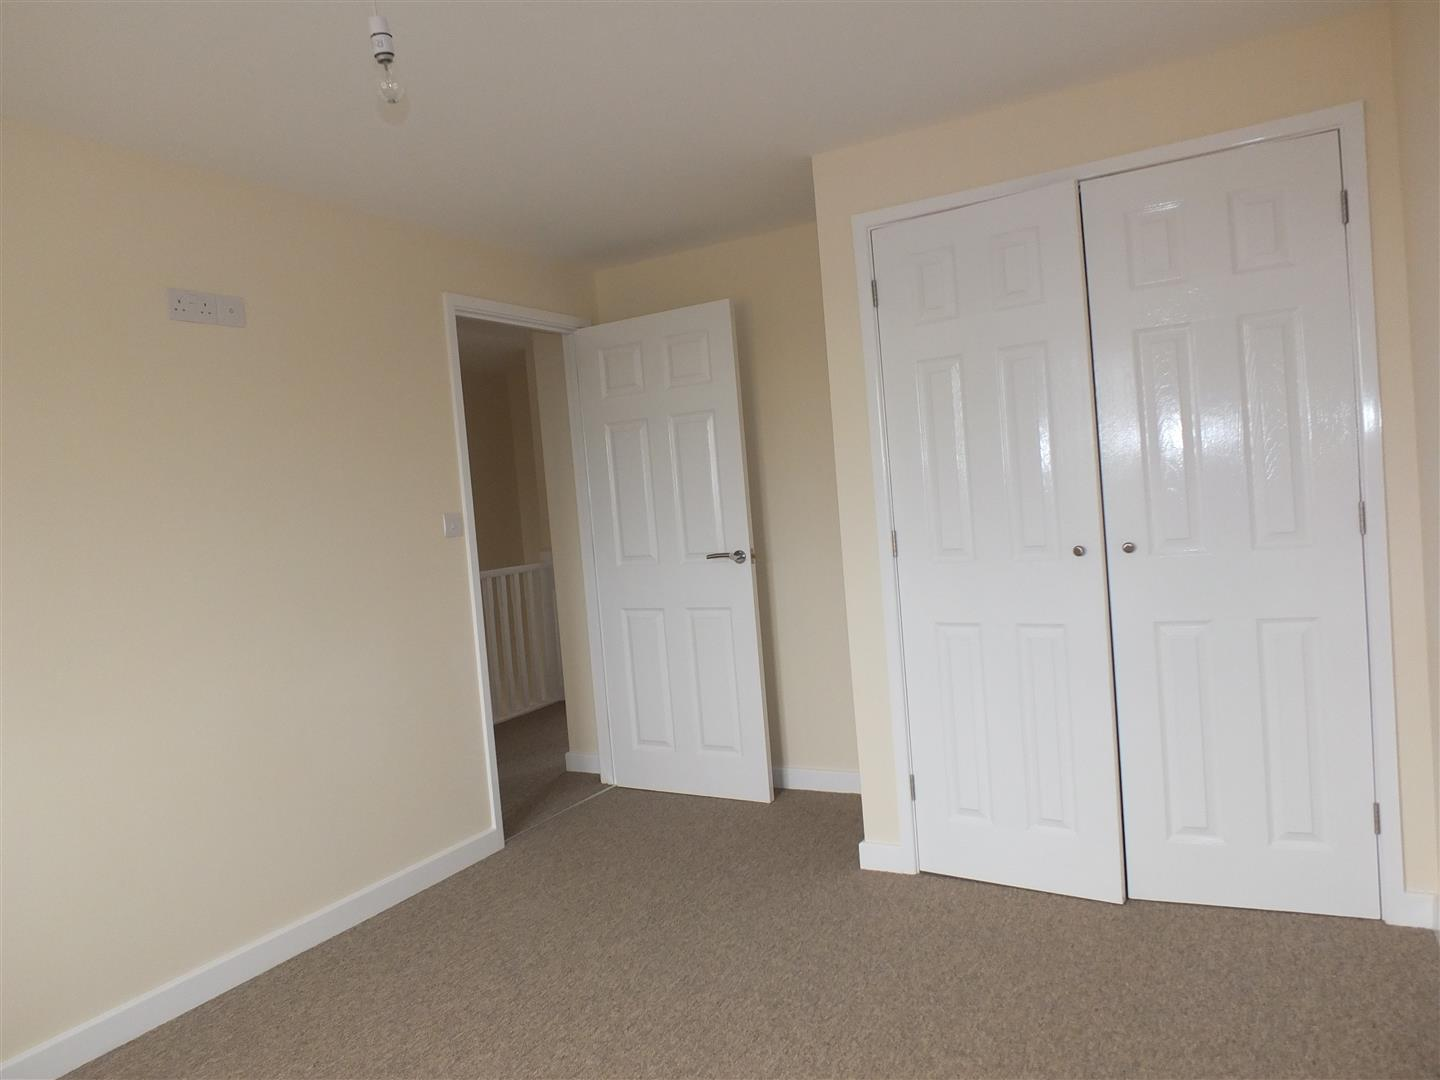 3 bed house to rent in Long Sutton, PE12 9LE, PE12